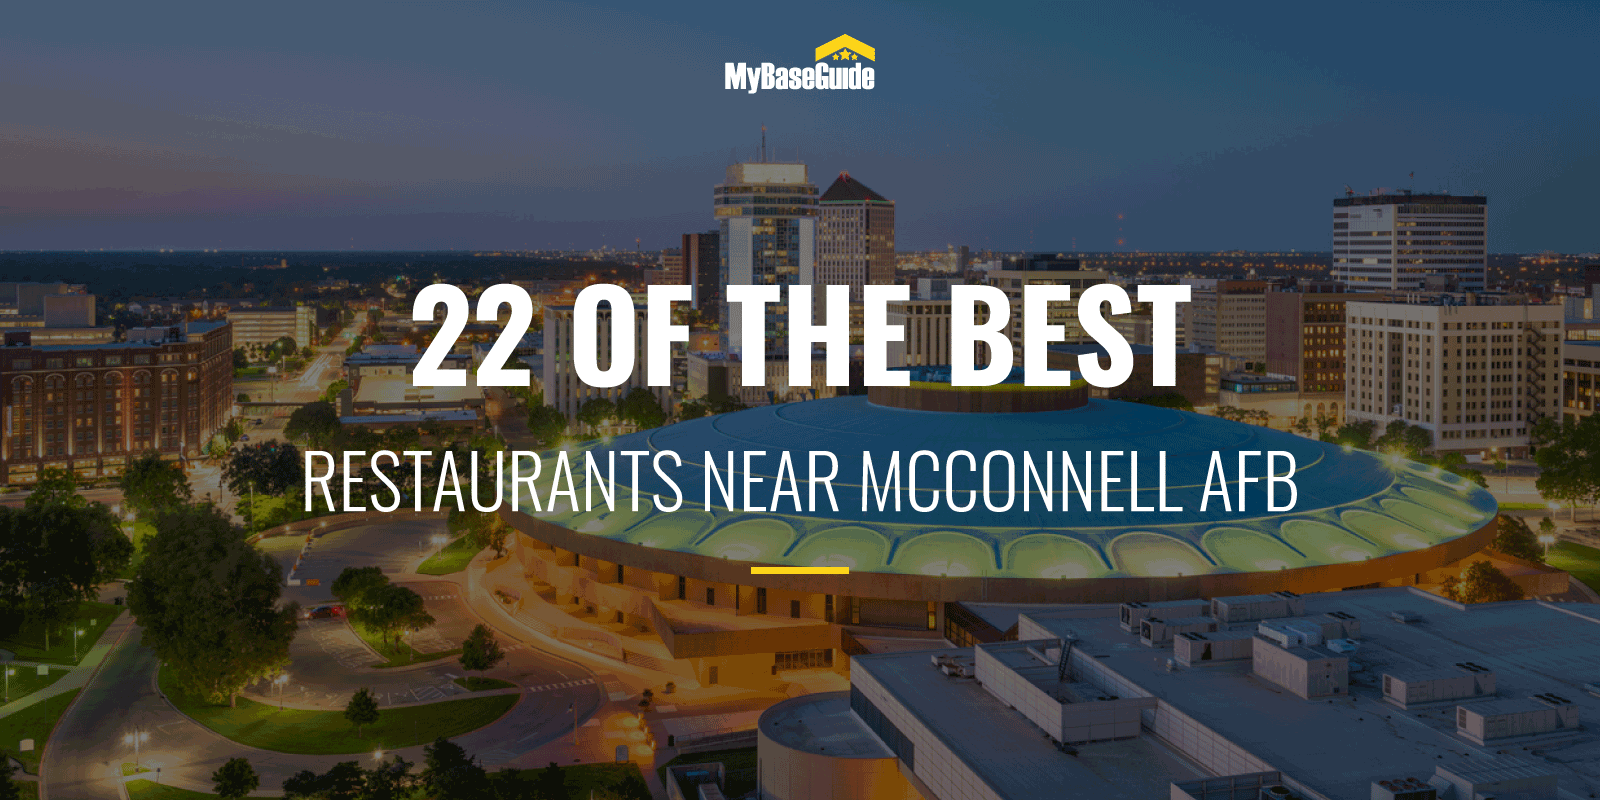 22 of the Best Restaurants Near McConnell AFB